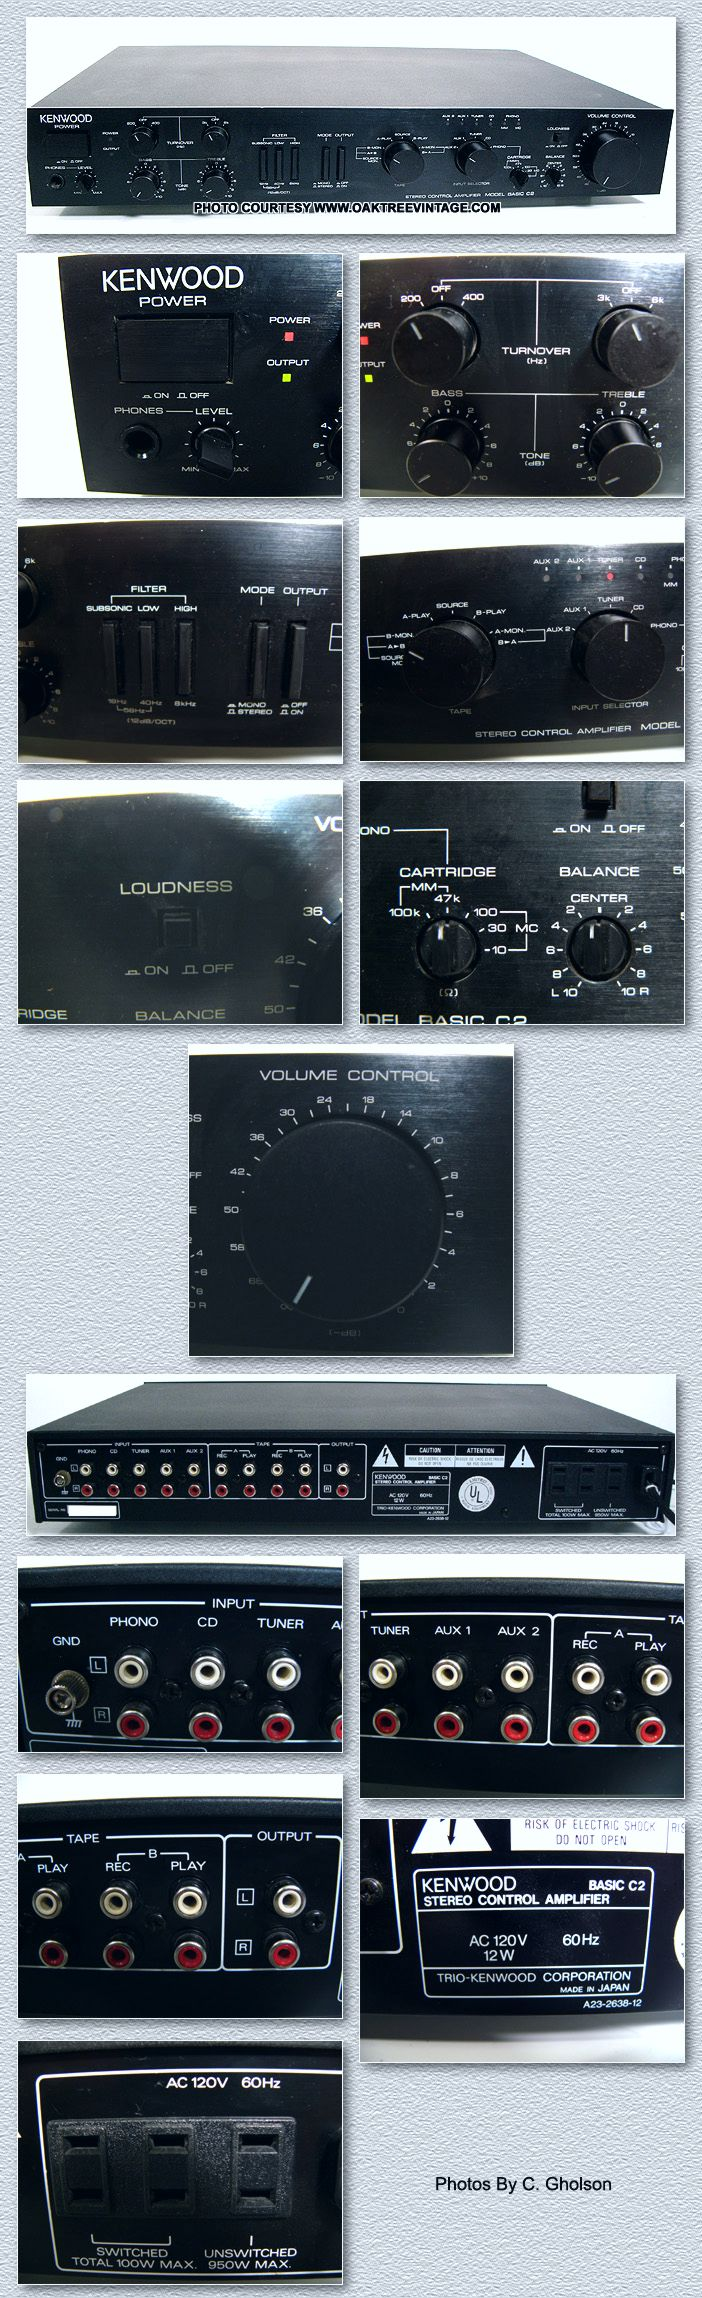 Vintage Stereo Amplifiers Pre Amps Restored Refurbished Fully 200 Watt Power Amplifier For Car By 2sc2922 2sa1216 New Listing 11 14 18 Click On Above Thumbnails To Enlarge Photos